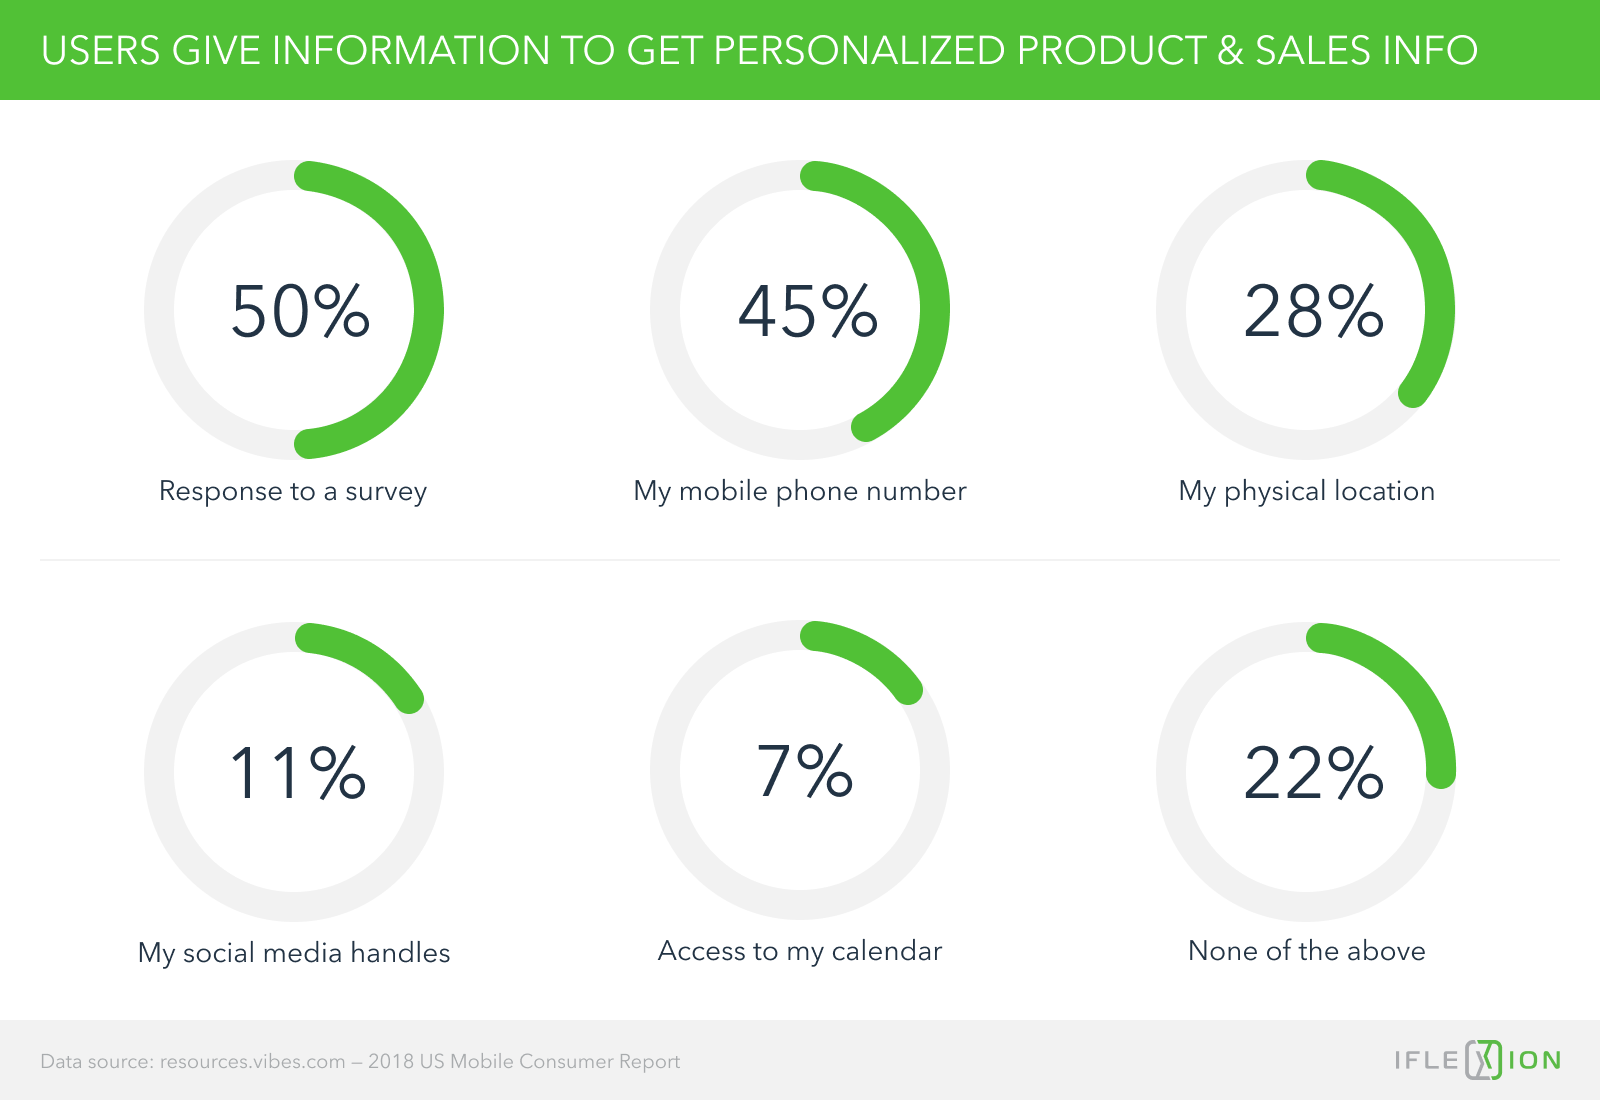 Users are willing to give information to get personalized offering